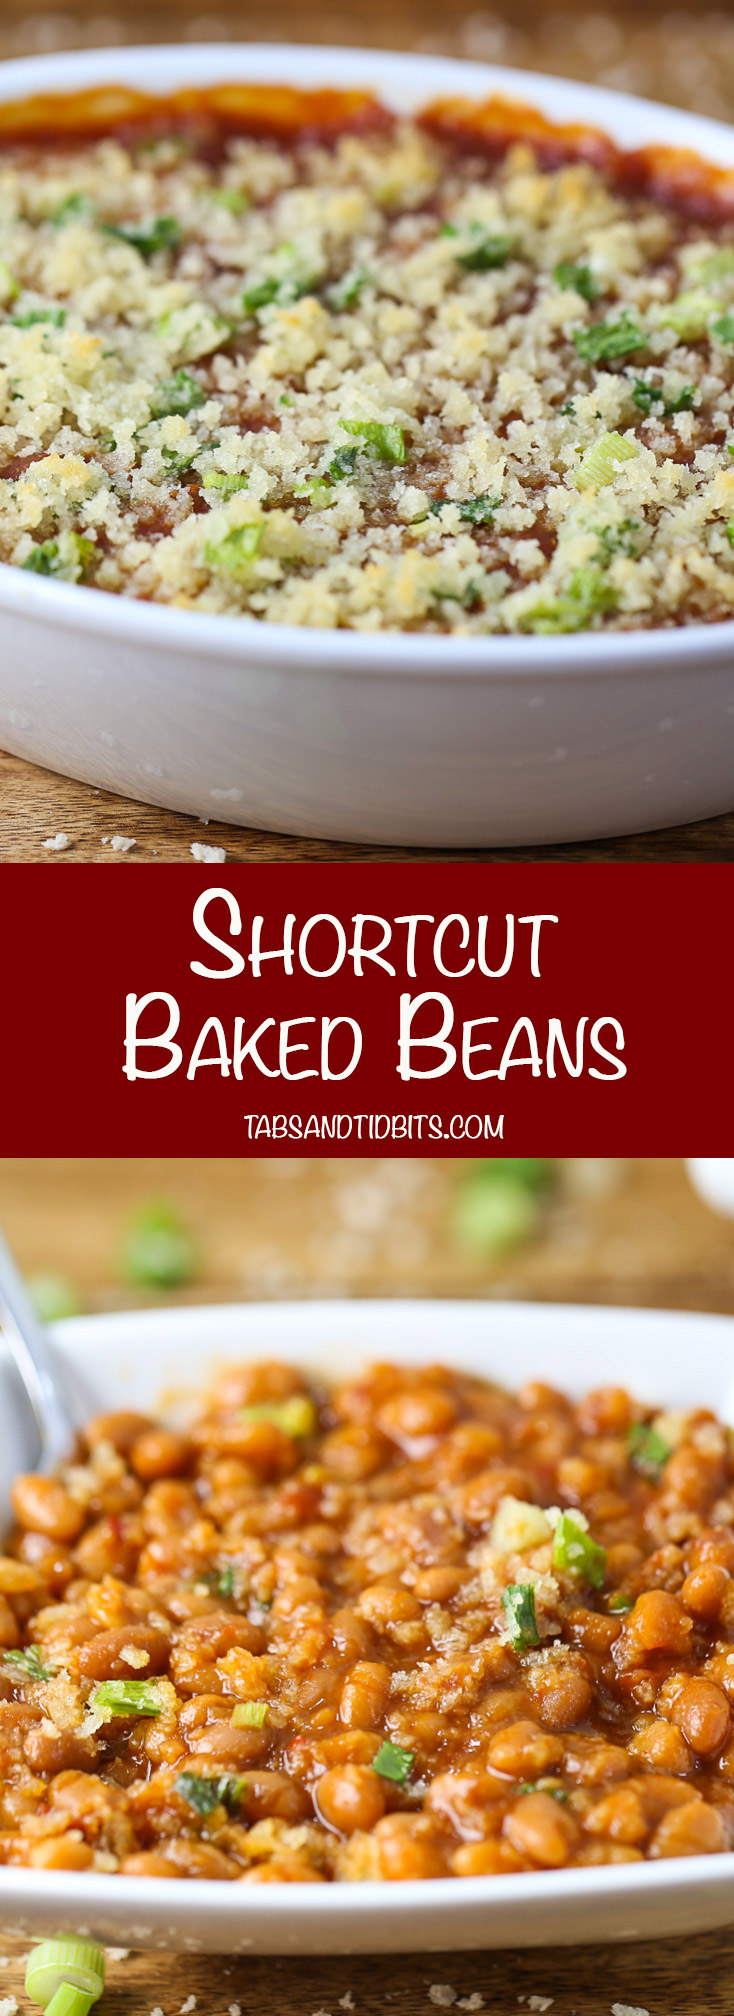 Shortcut Baked Beans - Baked beans with canned baked beans added seasonings topped with a buttery bread crumb and green onion topping!